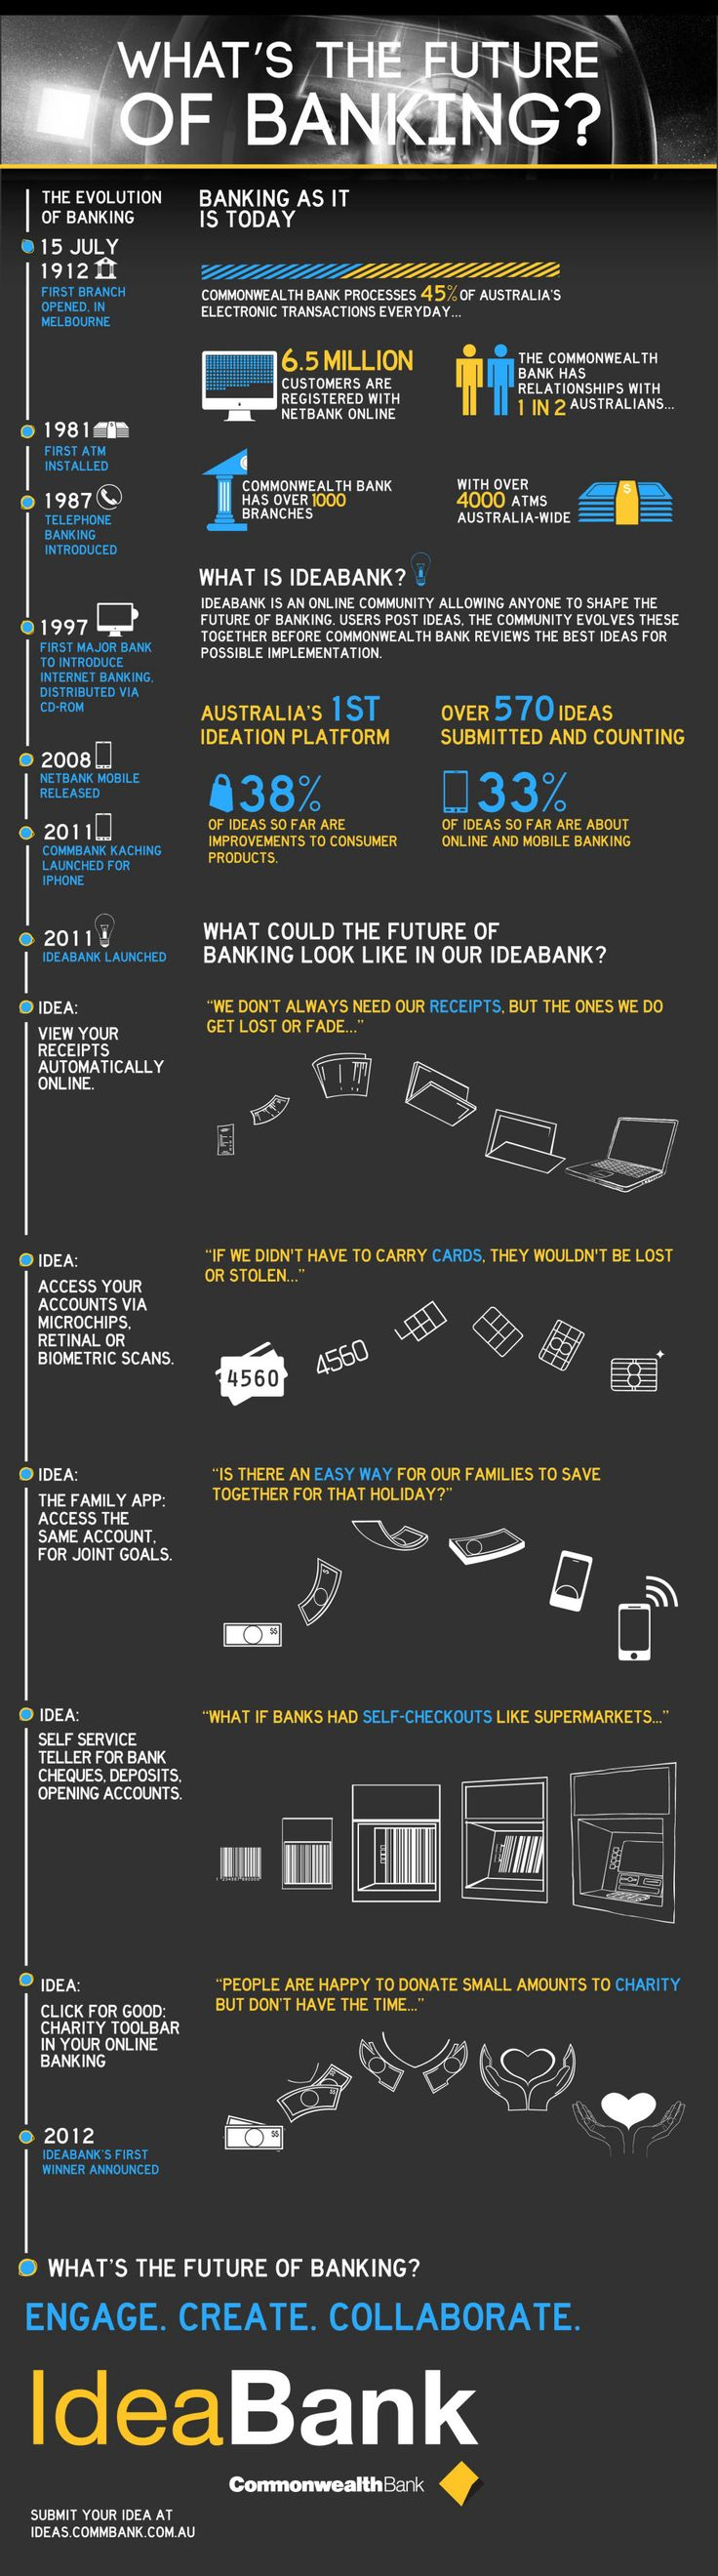 #Future of #banking - Ideabank great #infographic